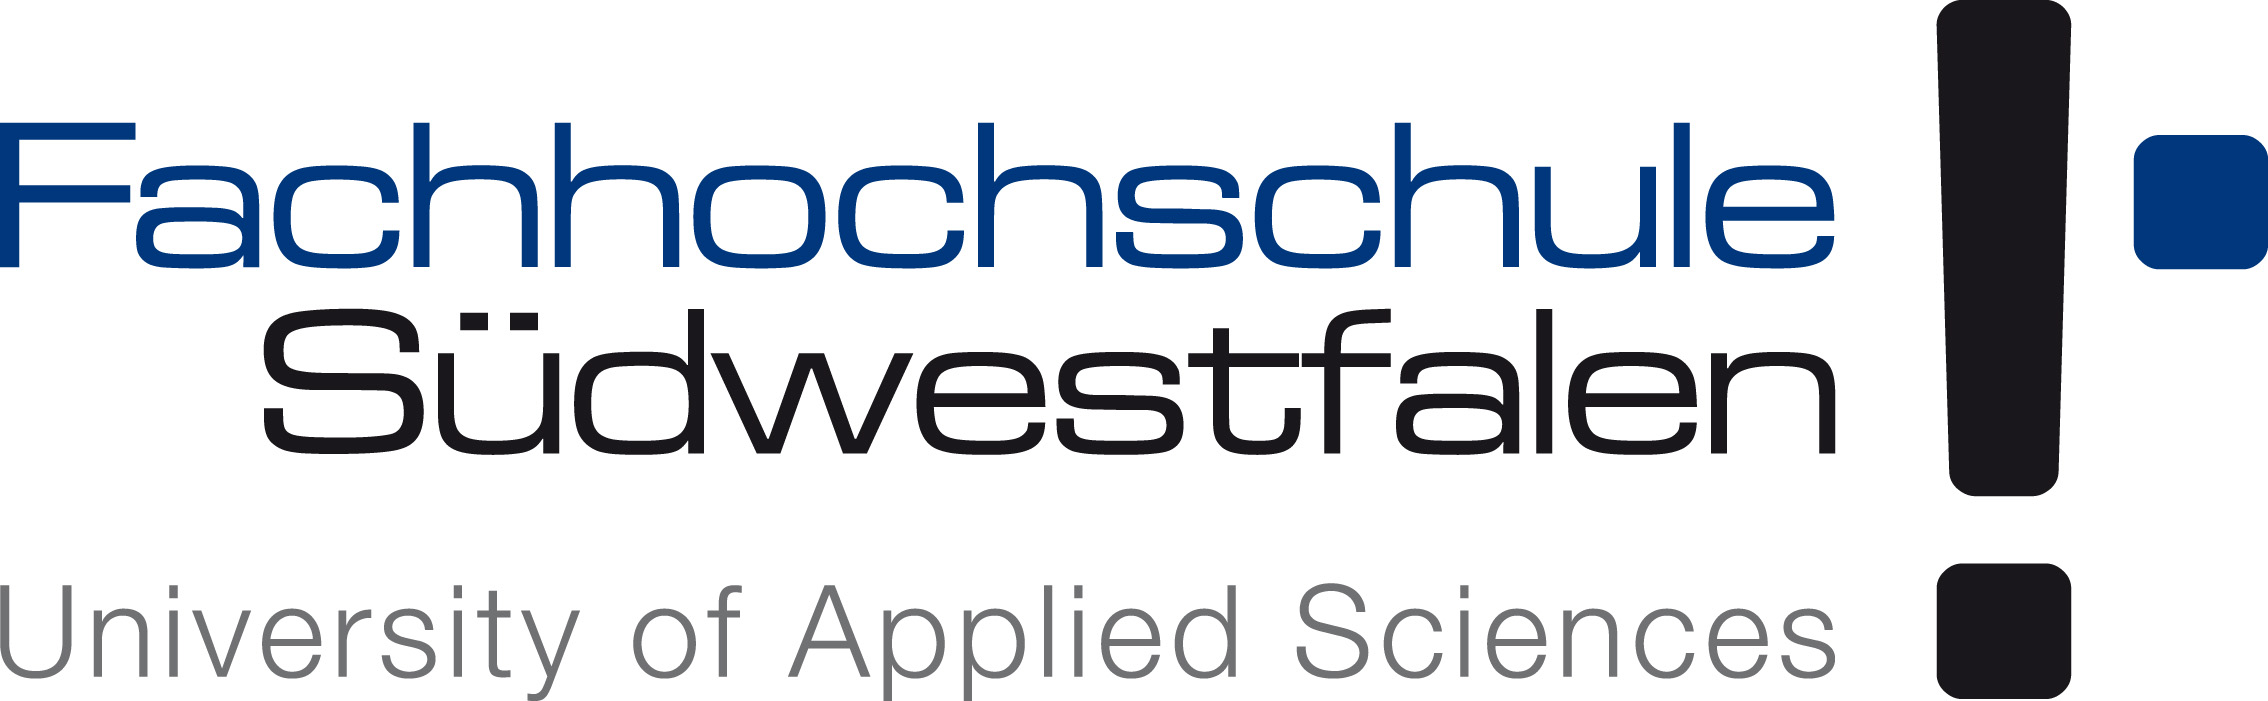 International Management with Engineering bei Fachhochschule Südwestfalen - Standort Meschede